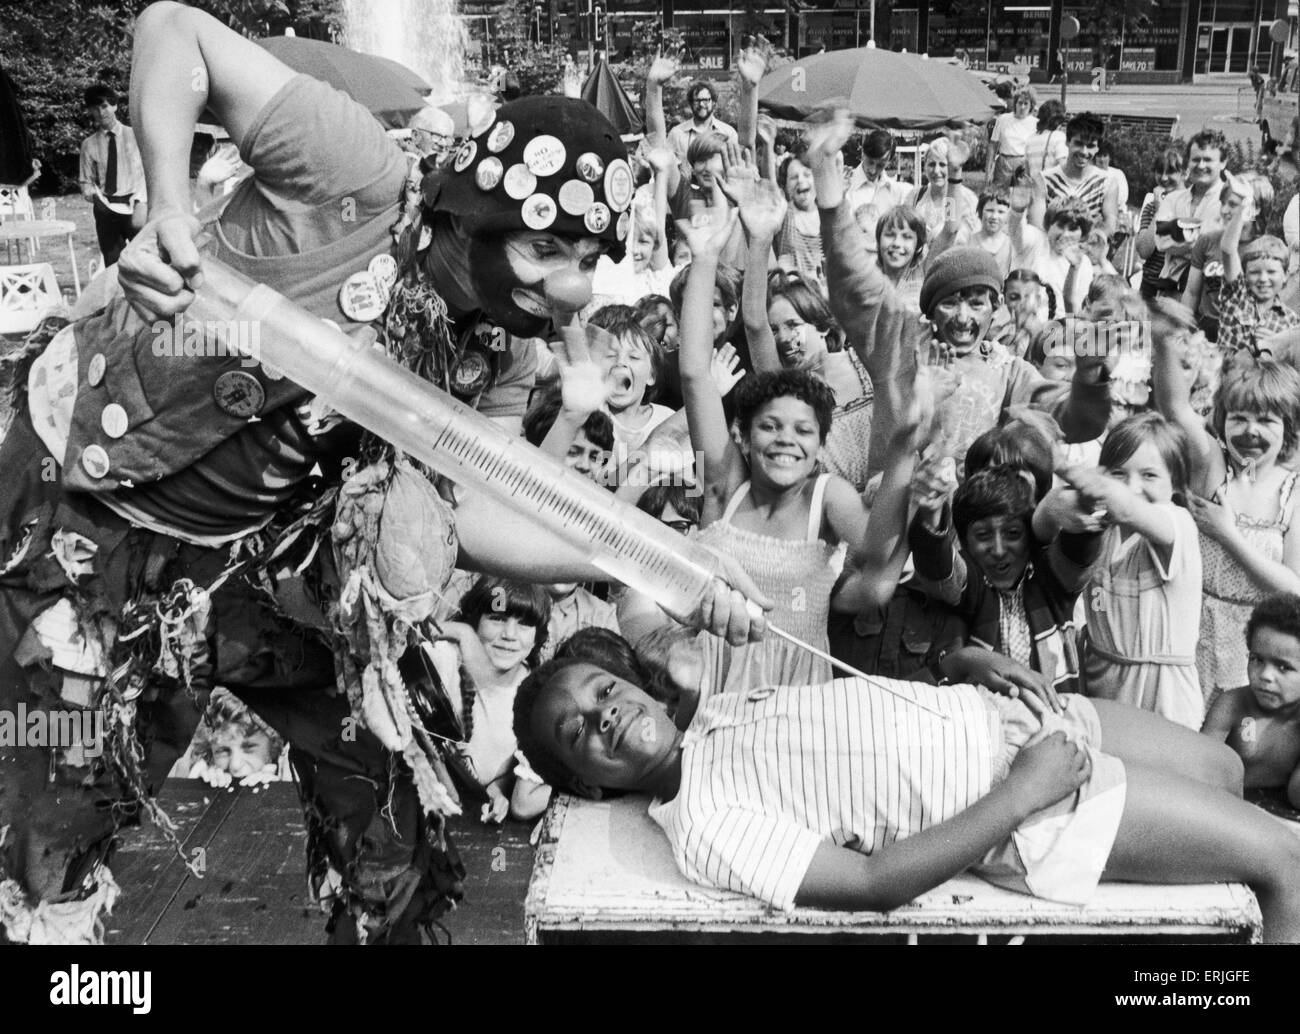 Audience participation was the name of the game when Palfi the clown took the stage in Belgrade Square, Coventry. - Stock Image